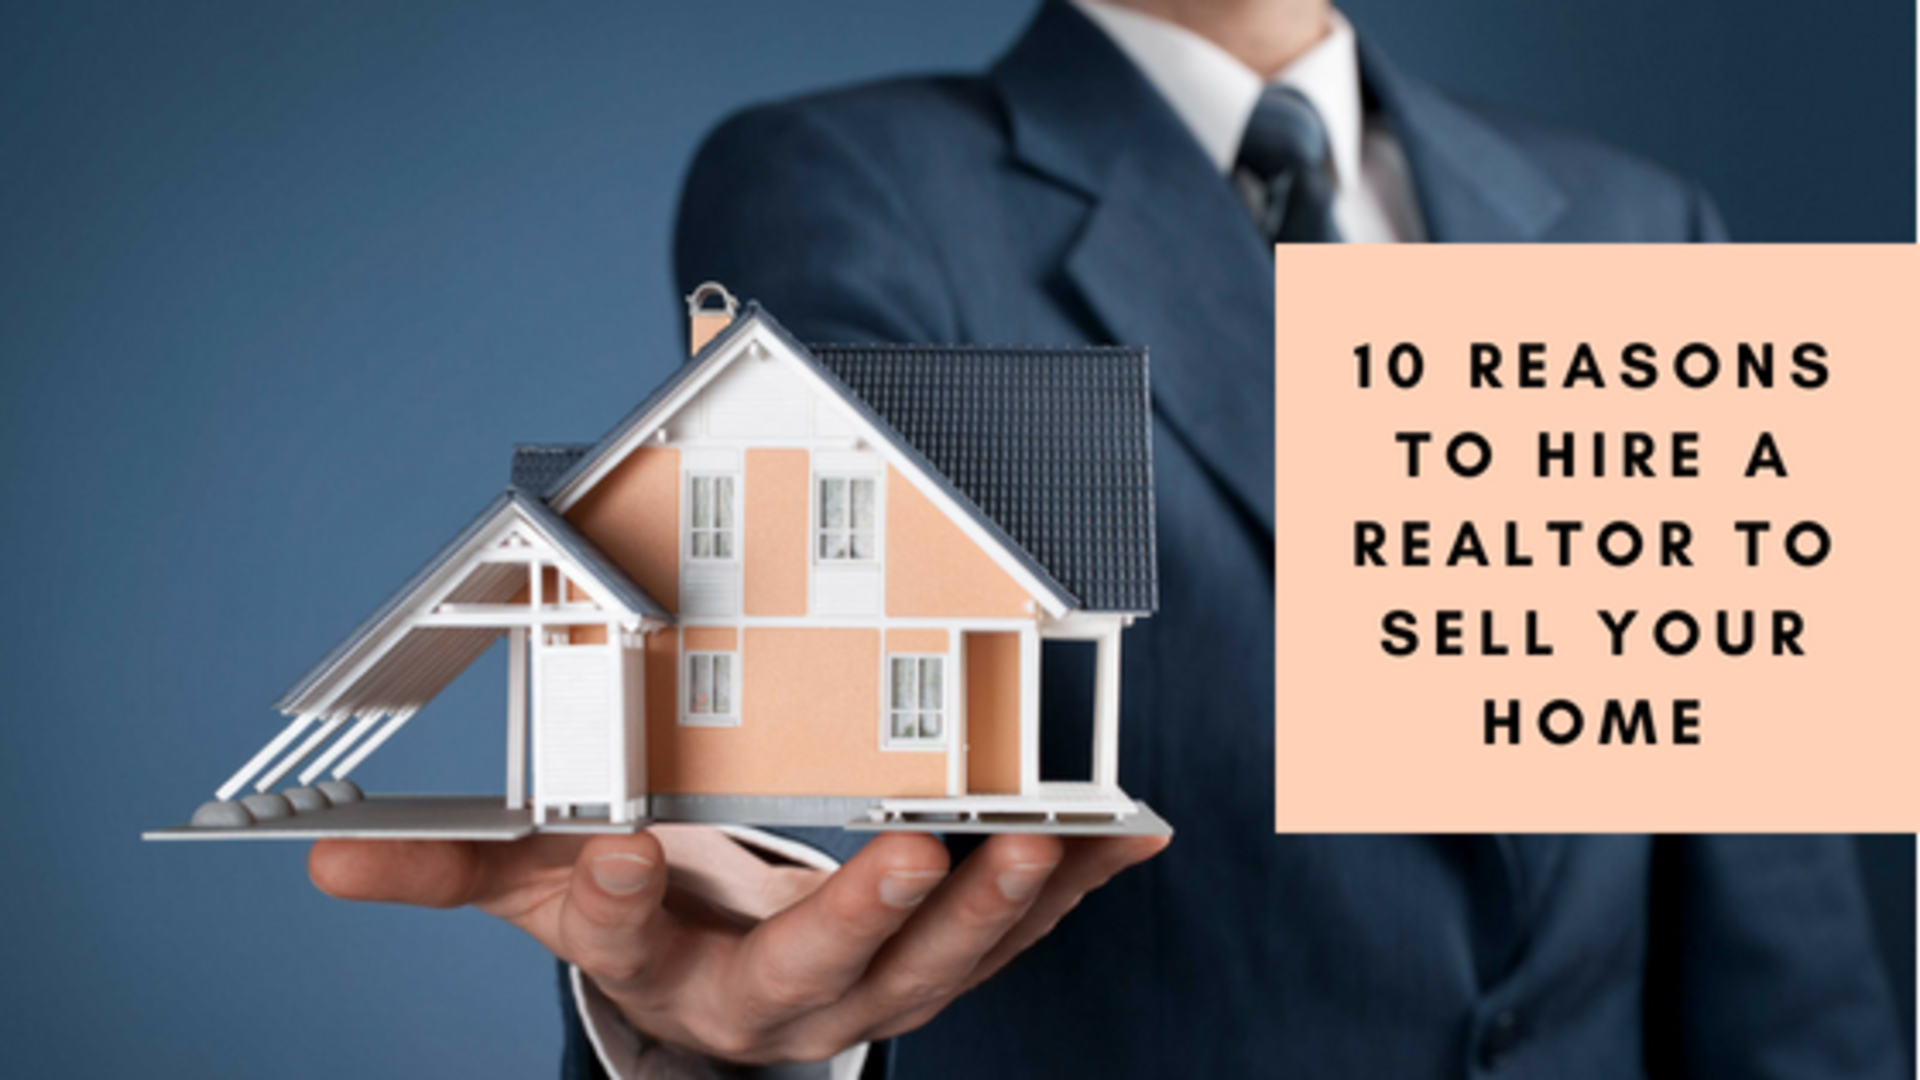 10 Reasons to Hire a Realtor to Sell your Home